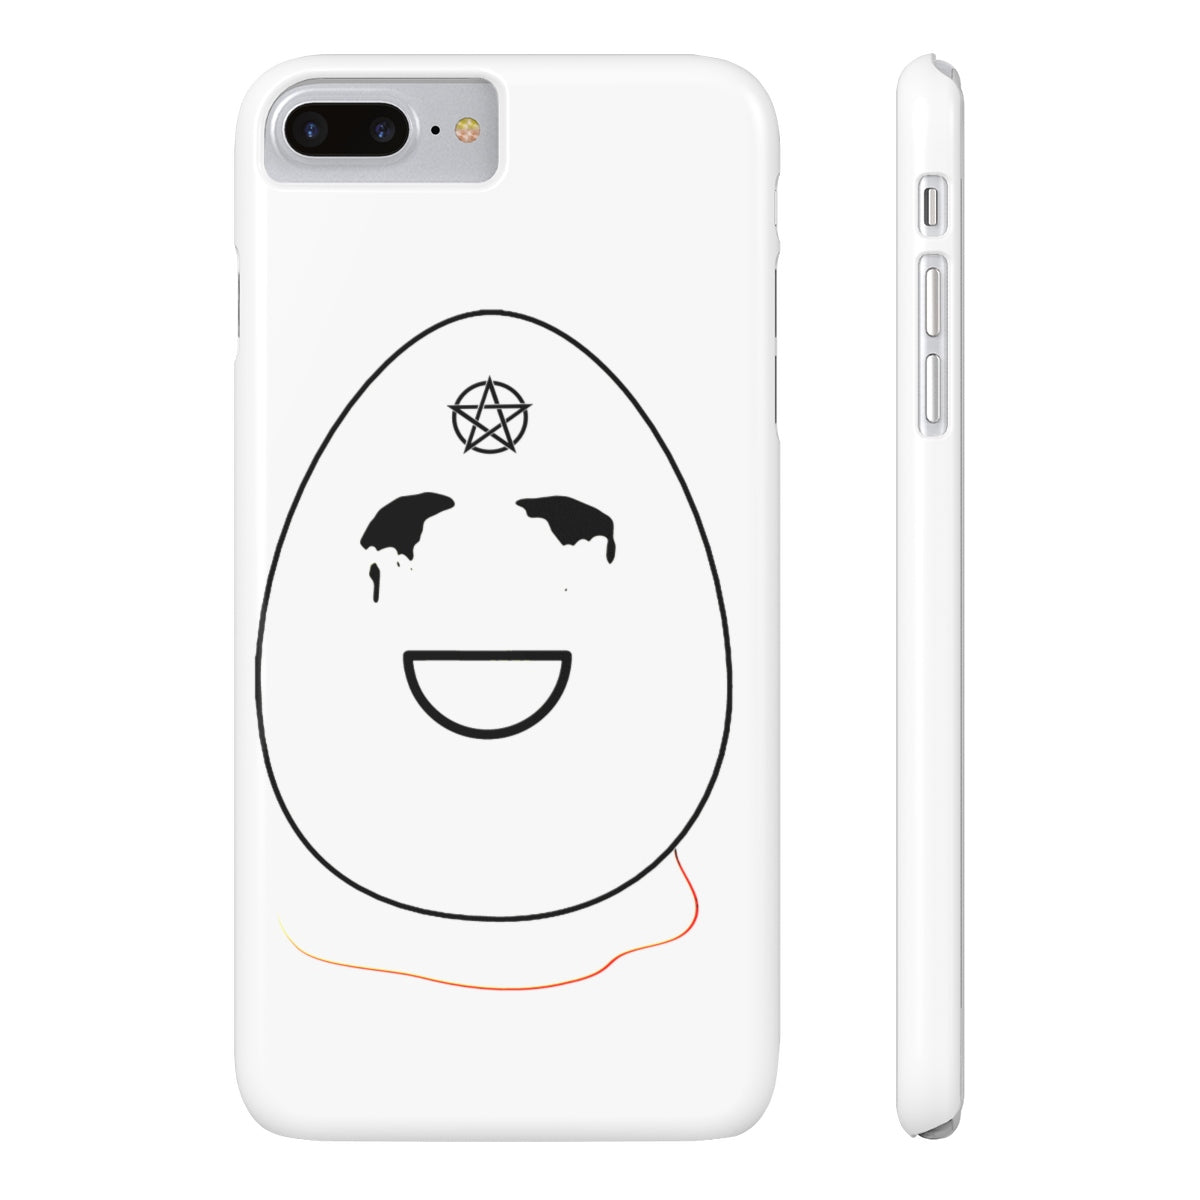 Eyeless Egg Phone Cases